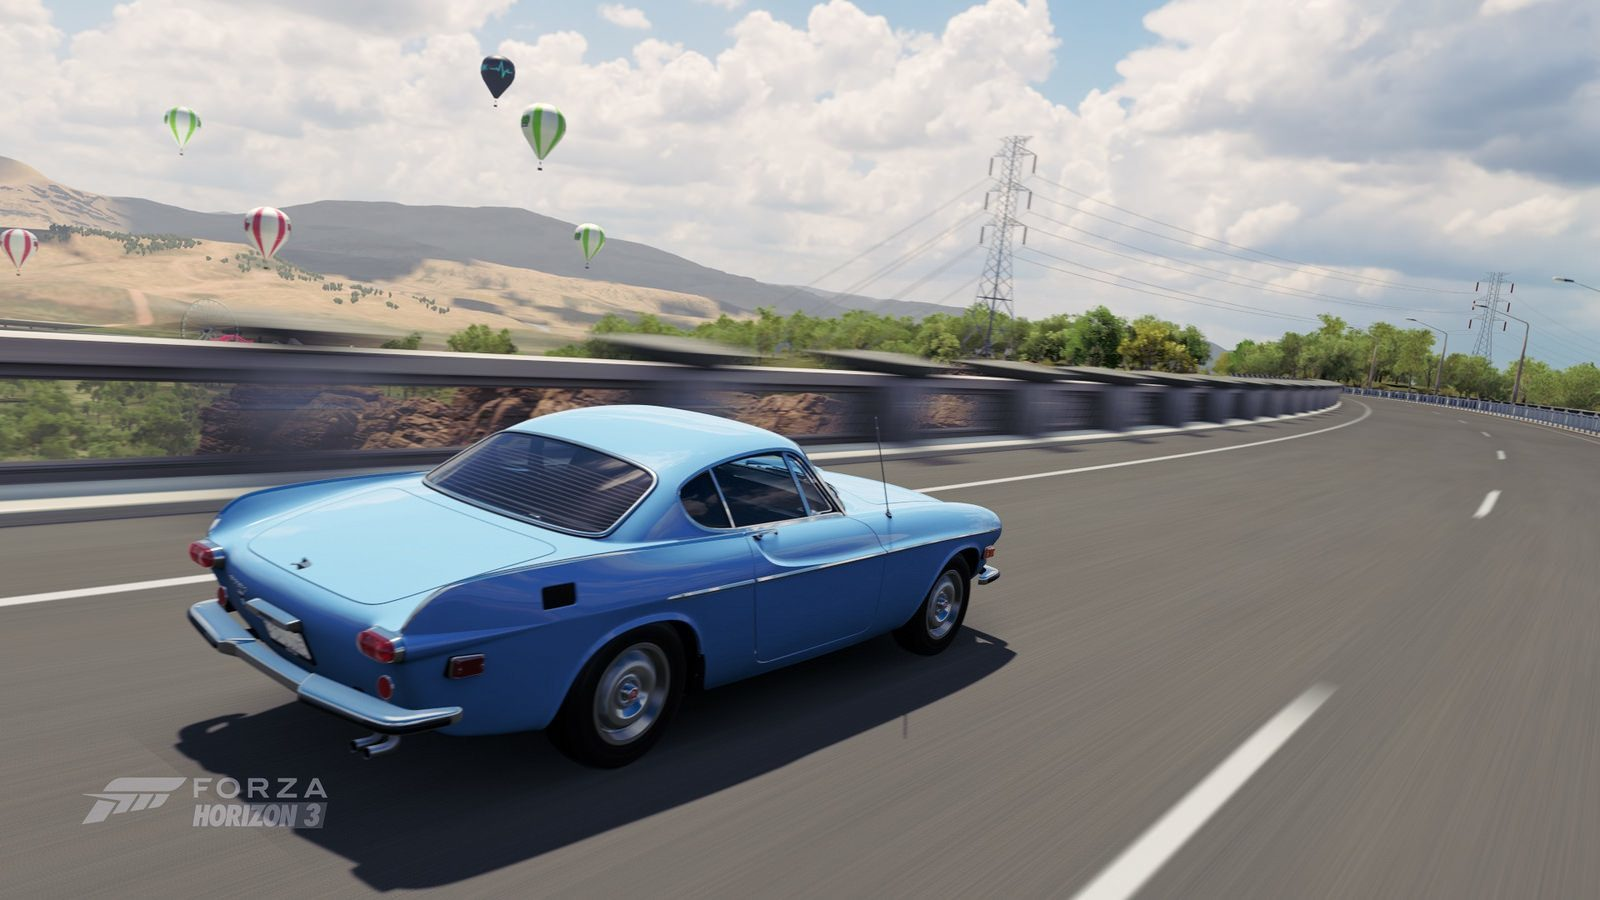 Latest FH3 Barn Find Brings SPOILER To Australia